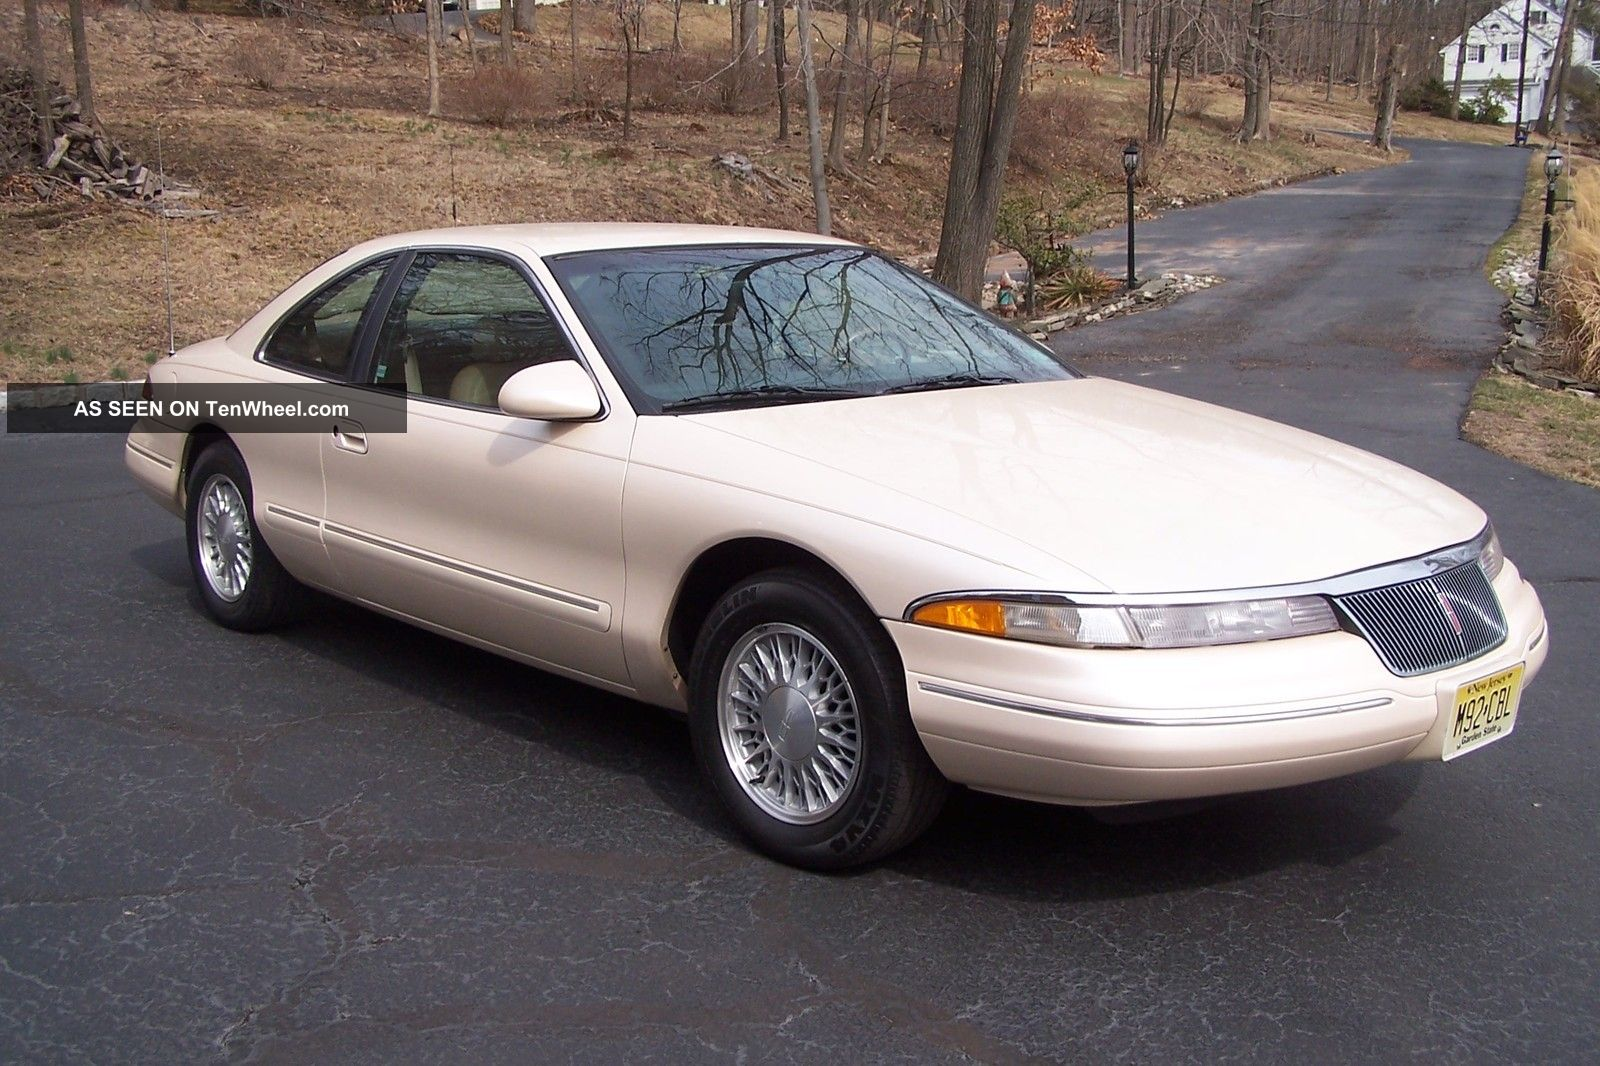 1995 lincoln mark viii size 314 kb resolution 1600x1066 type link file src